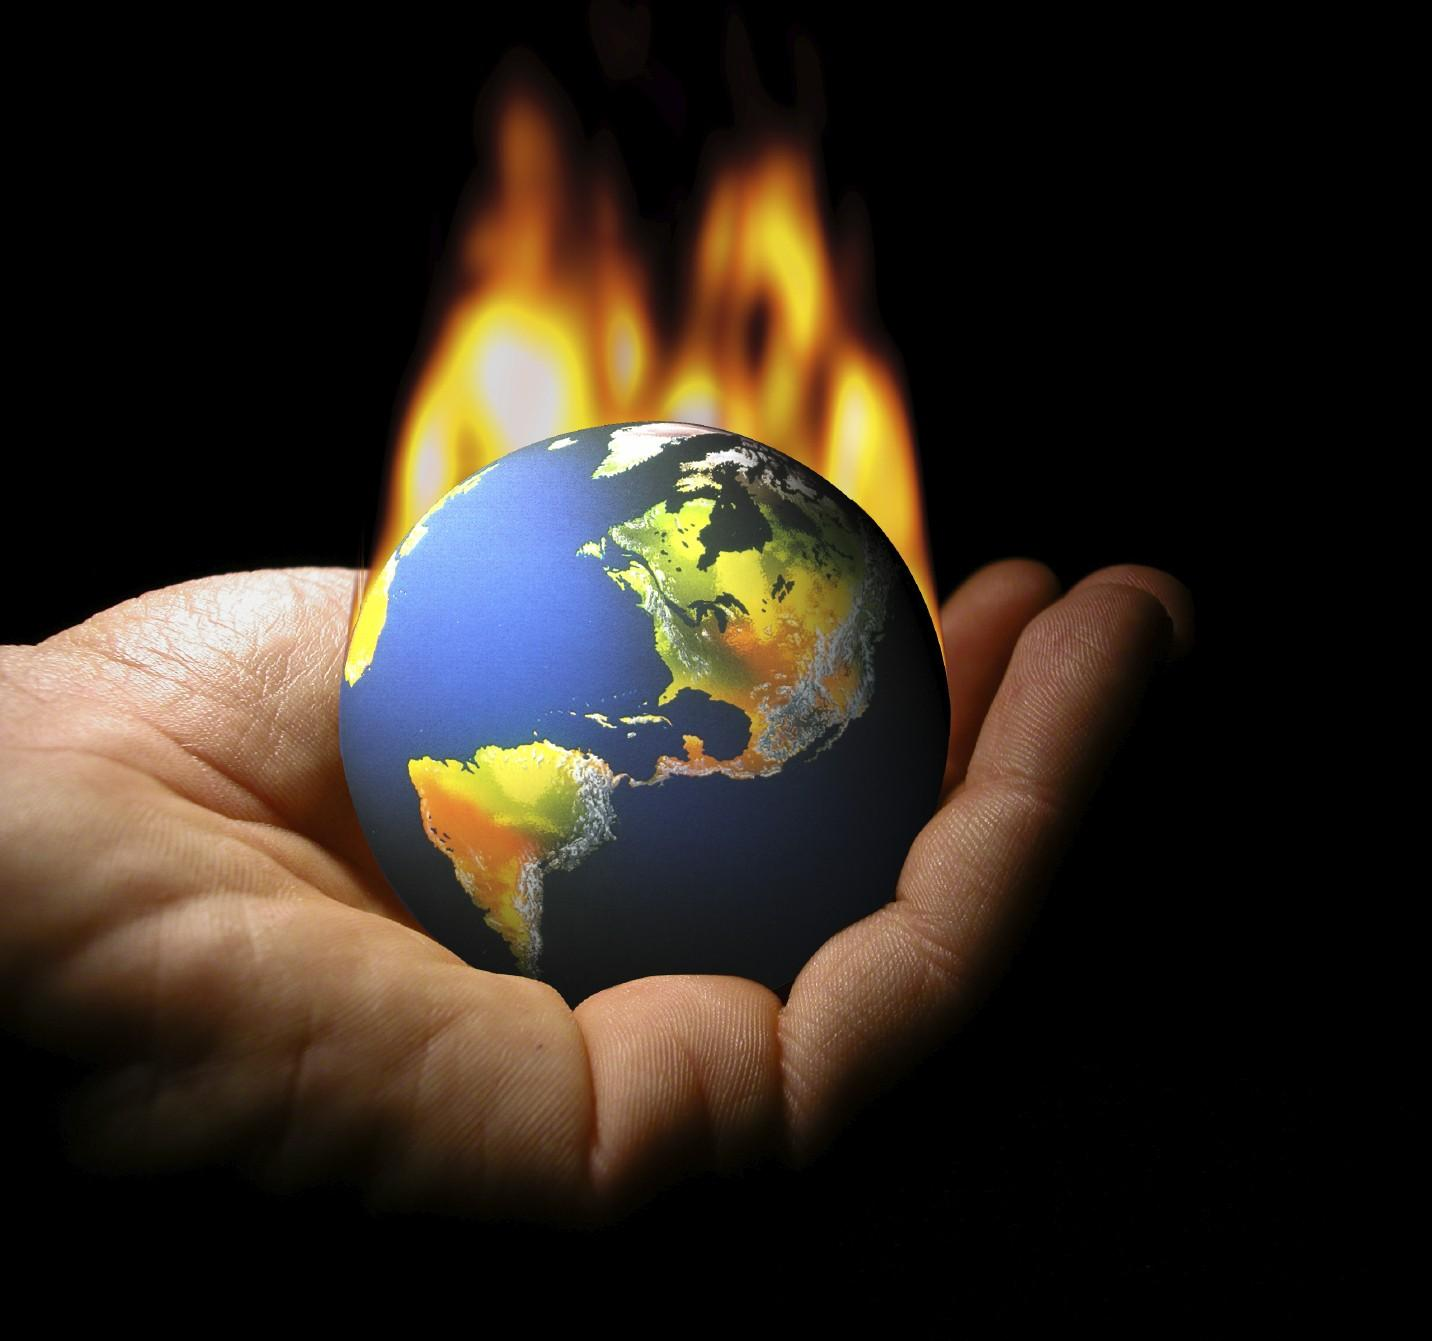 nowadays climate change is a hot topic and has been the subject nowadays climate change is a hot topic and has been the subject of intense debate climate change is actually refers to an increase in average global